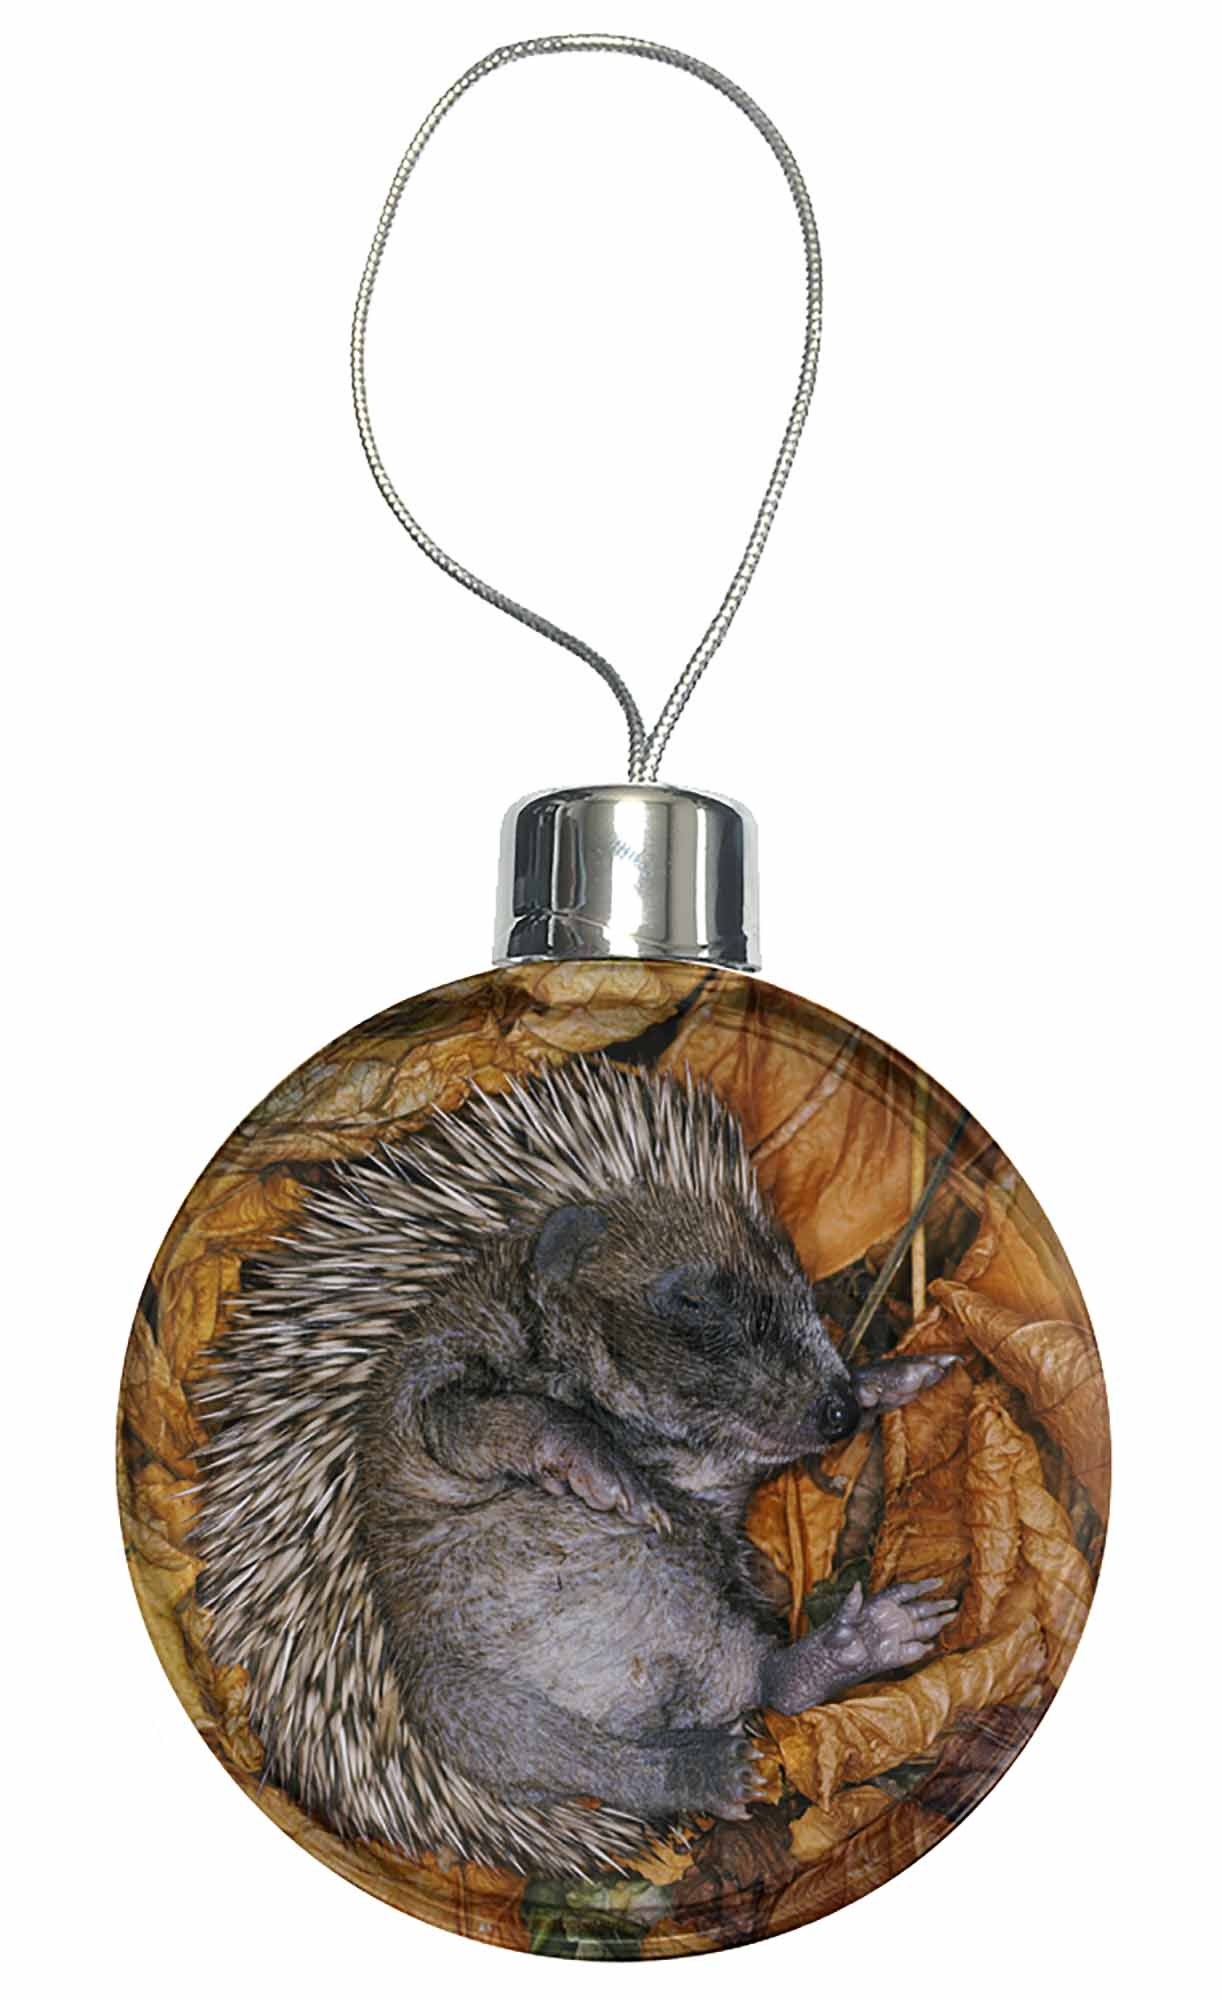 AHE-4CB Sleeping Baby Hedgehog Christmas Tree Bauble Decoration Gift